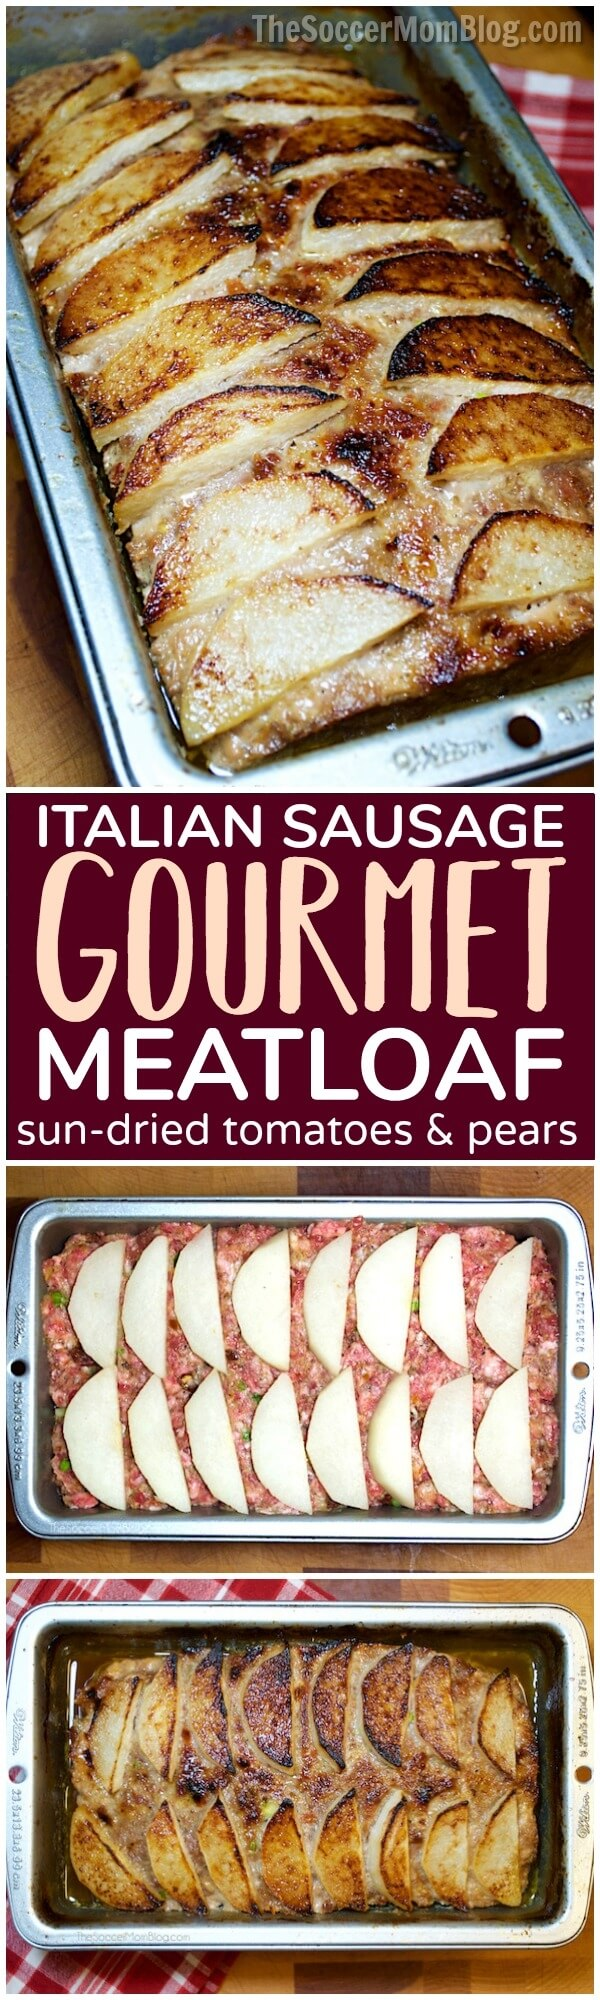 Forget the boring stuff you had growing up...thisgourmethealthy meatloaf recipe is downright delicious! (Plus it's really good for you!)